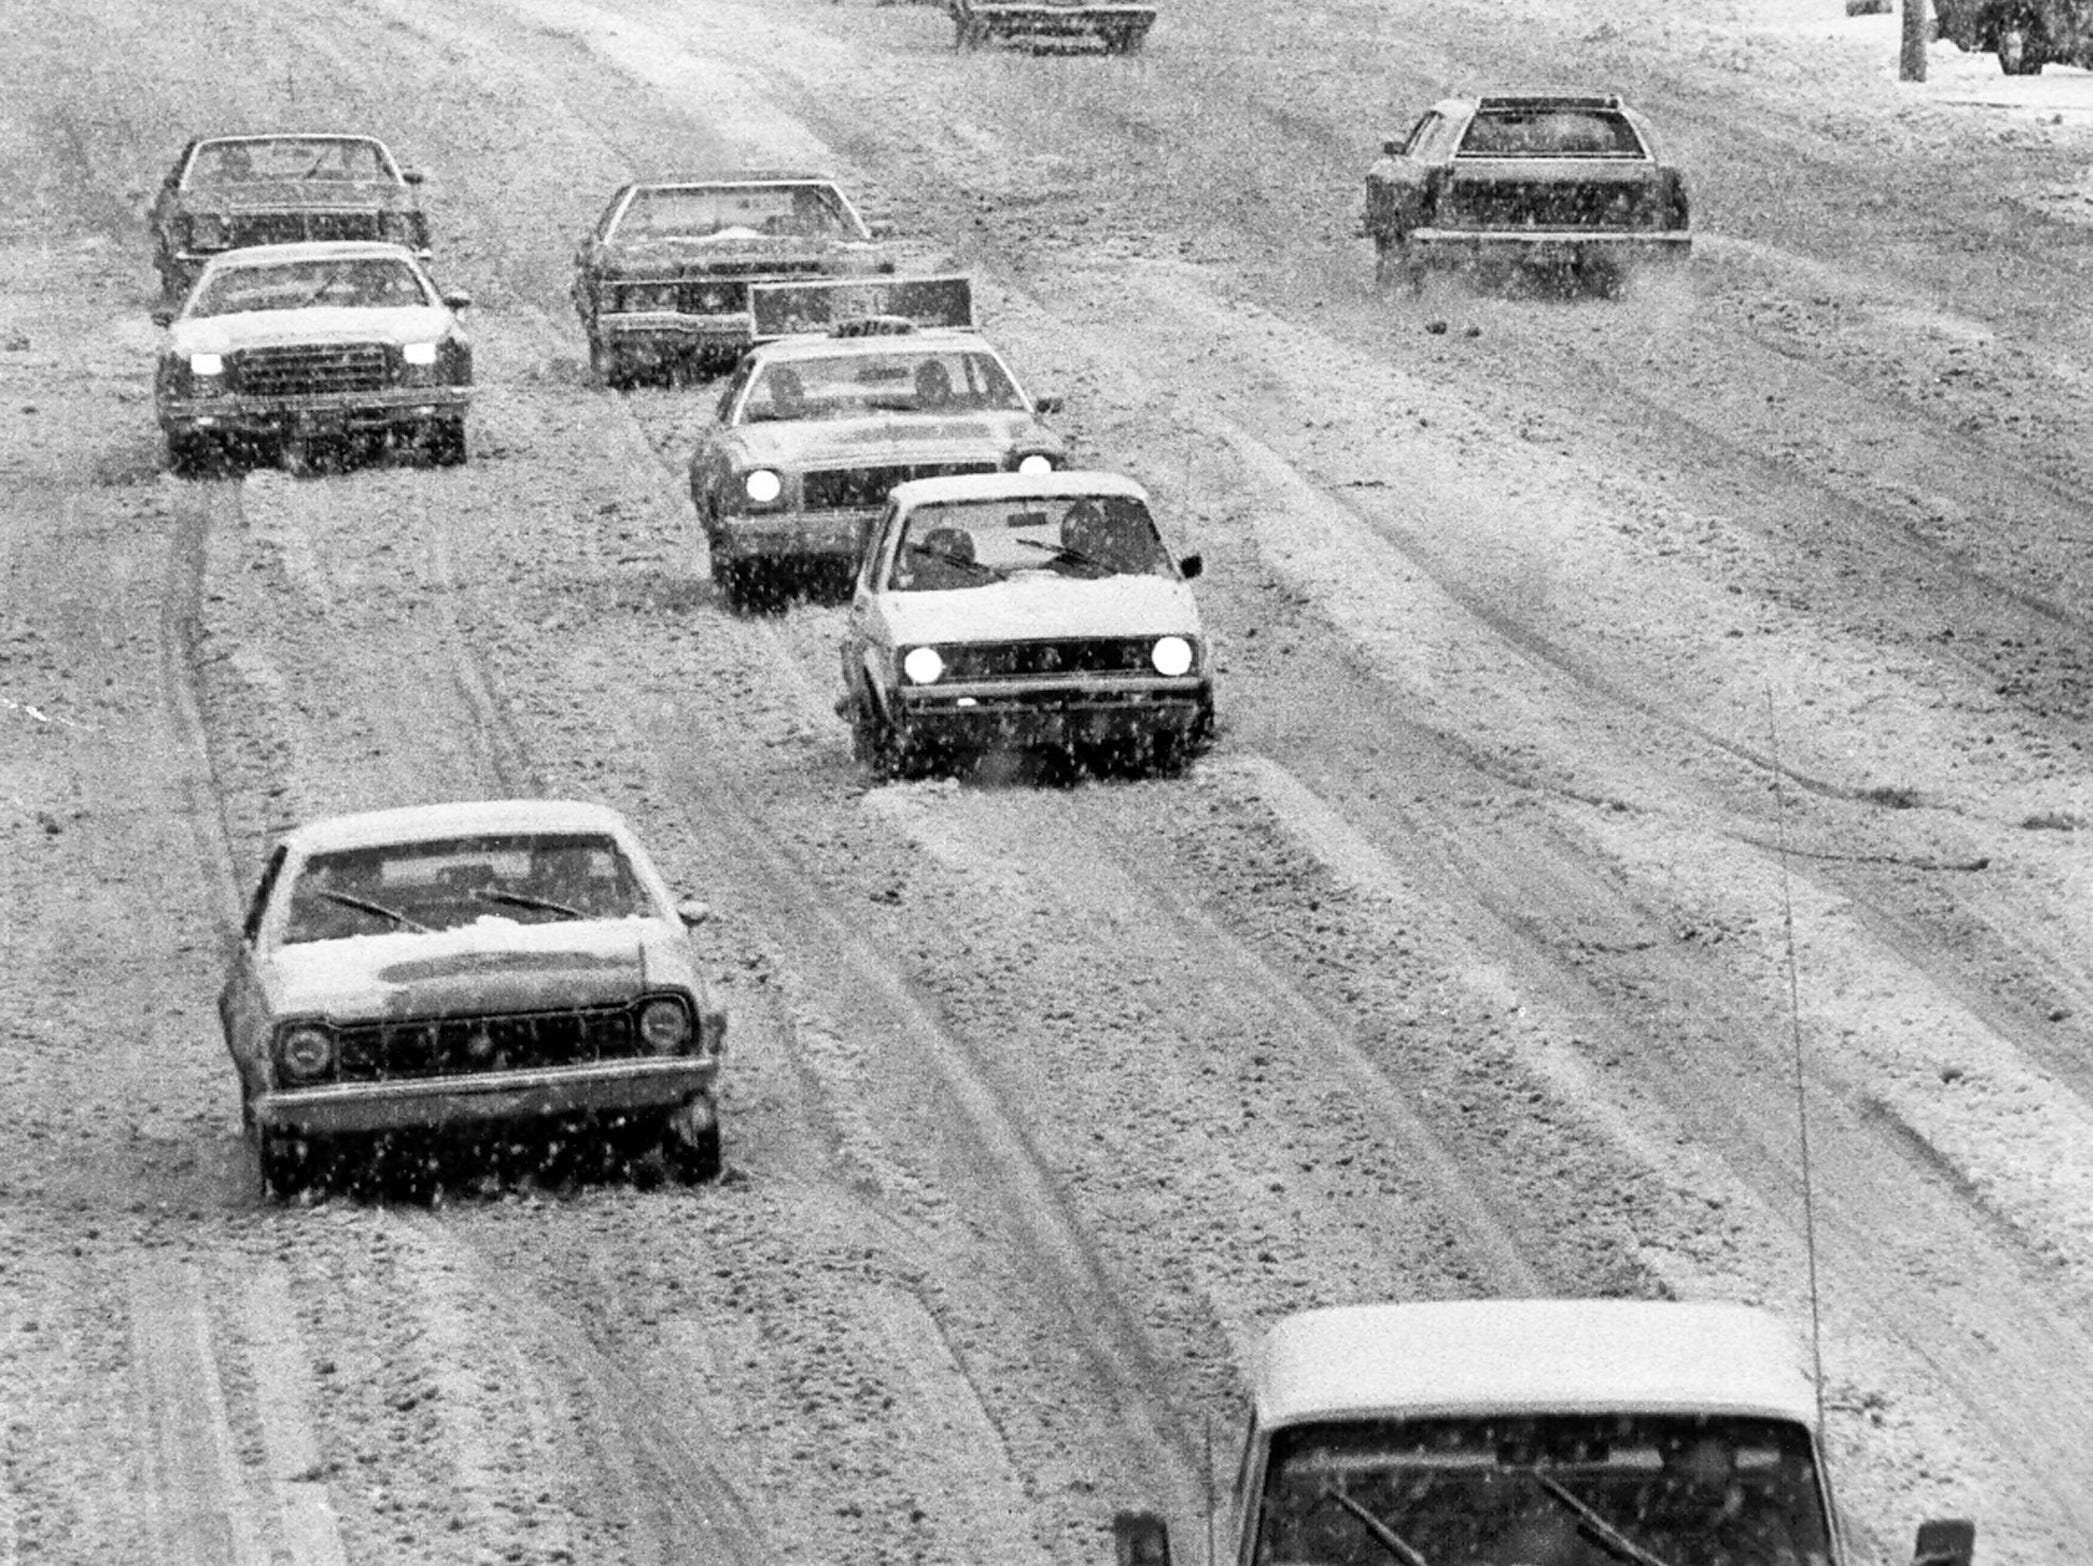 Dave Darnell/The Commercial Appeal files Union Avenue was covered in snow as traffic crawled along on Jan. 12, 1978, as evidenced by this view looking west from the pedestrian overpass east of Bellevue. Union Avenue was covered in snow as traffic crawled along on Jan. 12, 1978, as evidenced by this view looking west from the pedestrian overpass east of Bellevue.